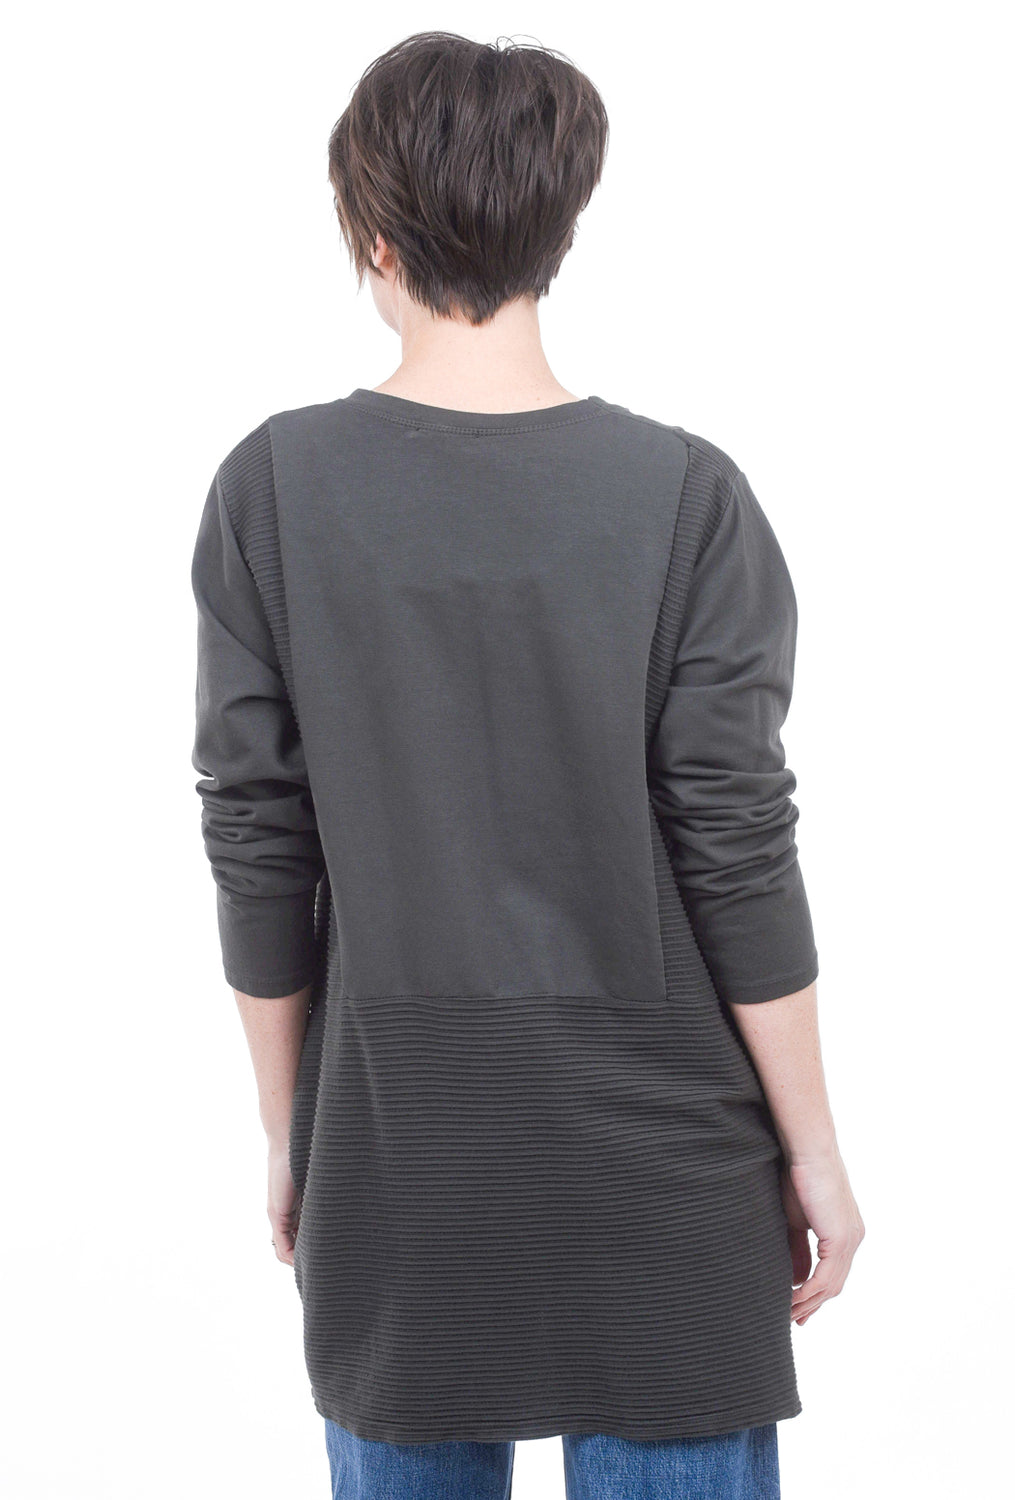 Oro Bonito Ribbed Details Tunic, Charcoal One Size Charcoal